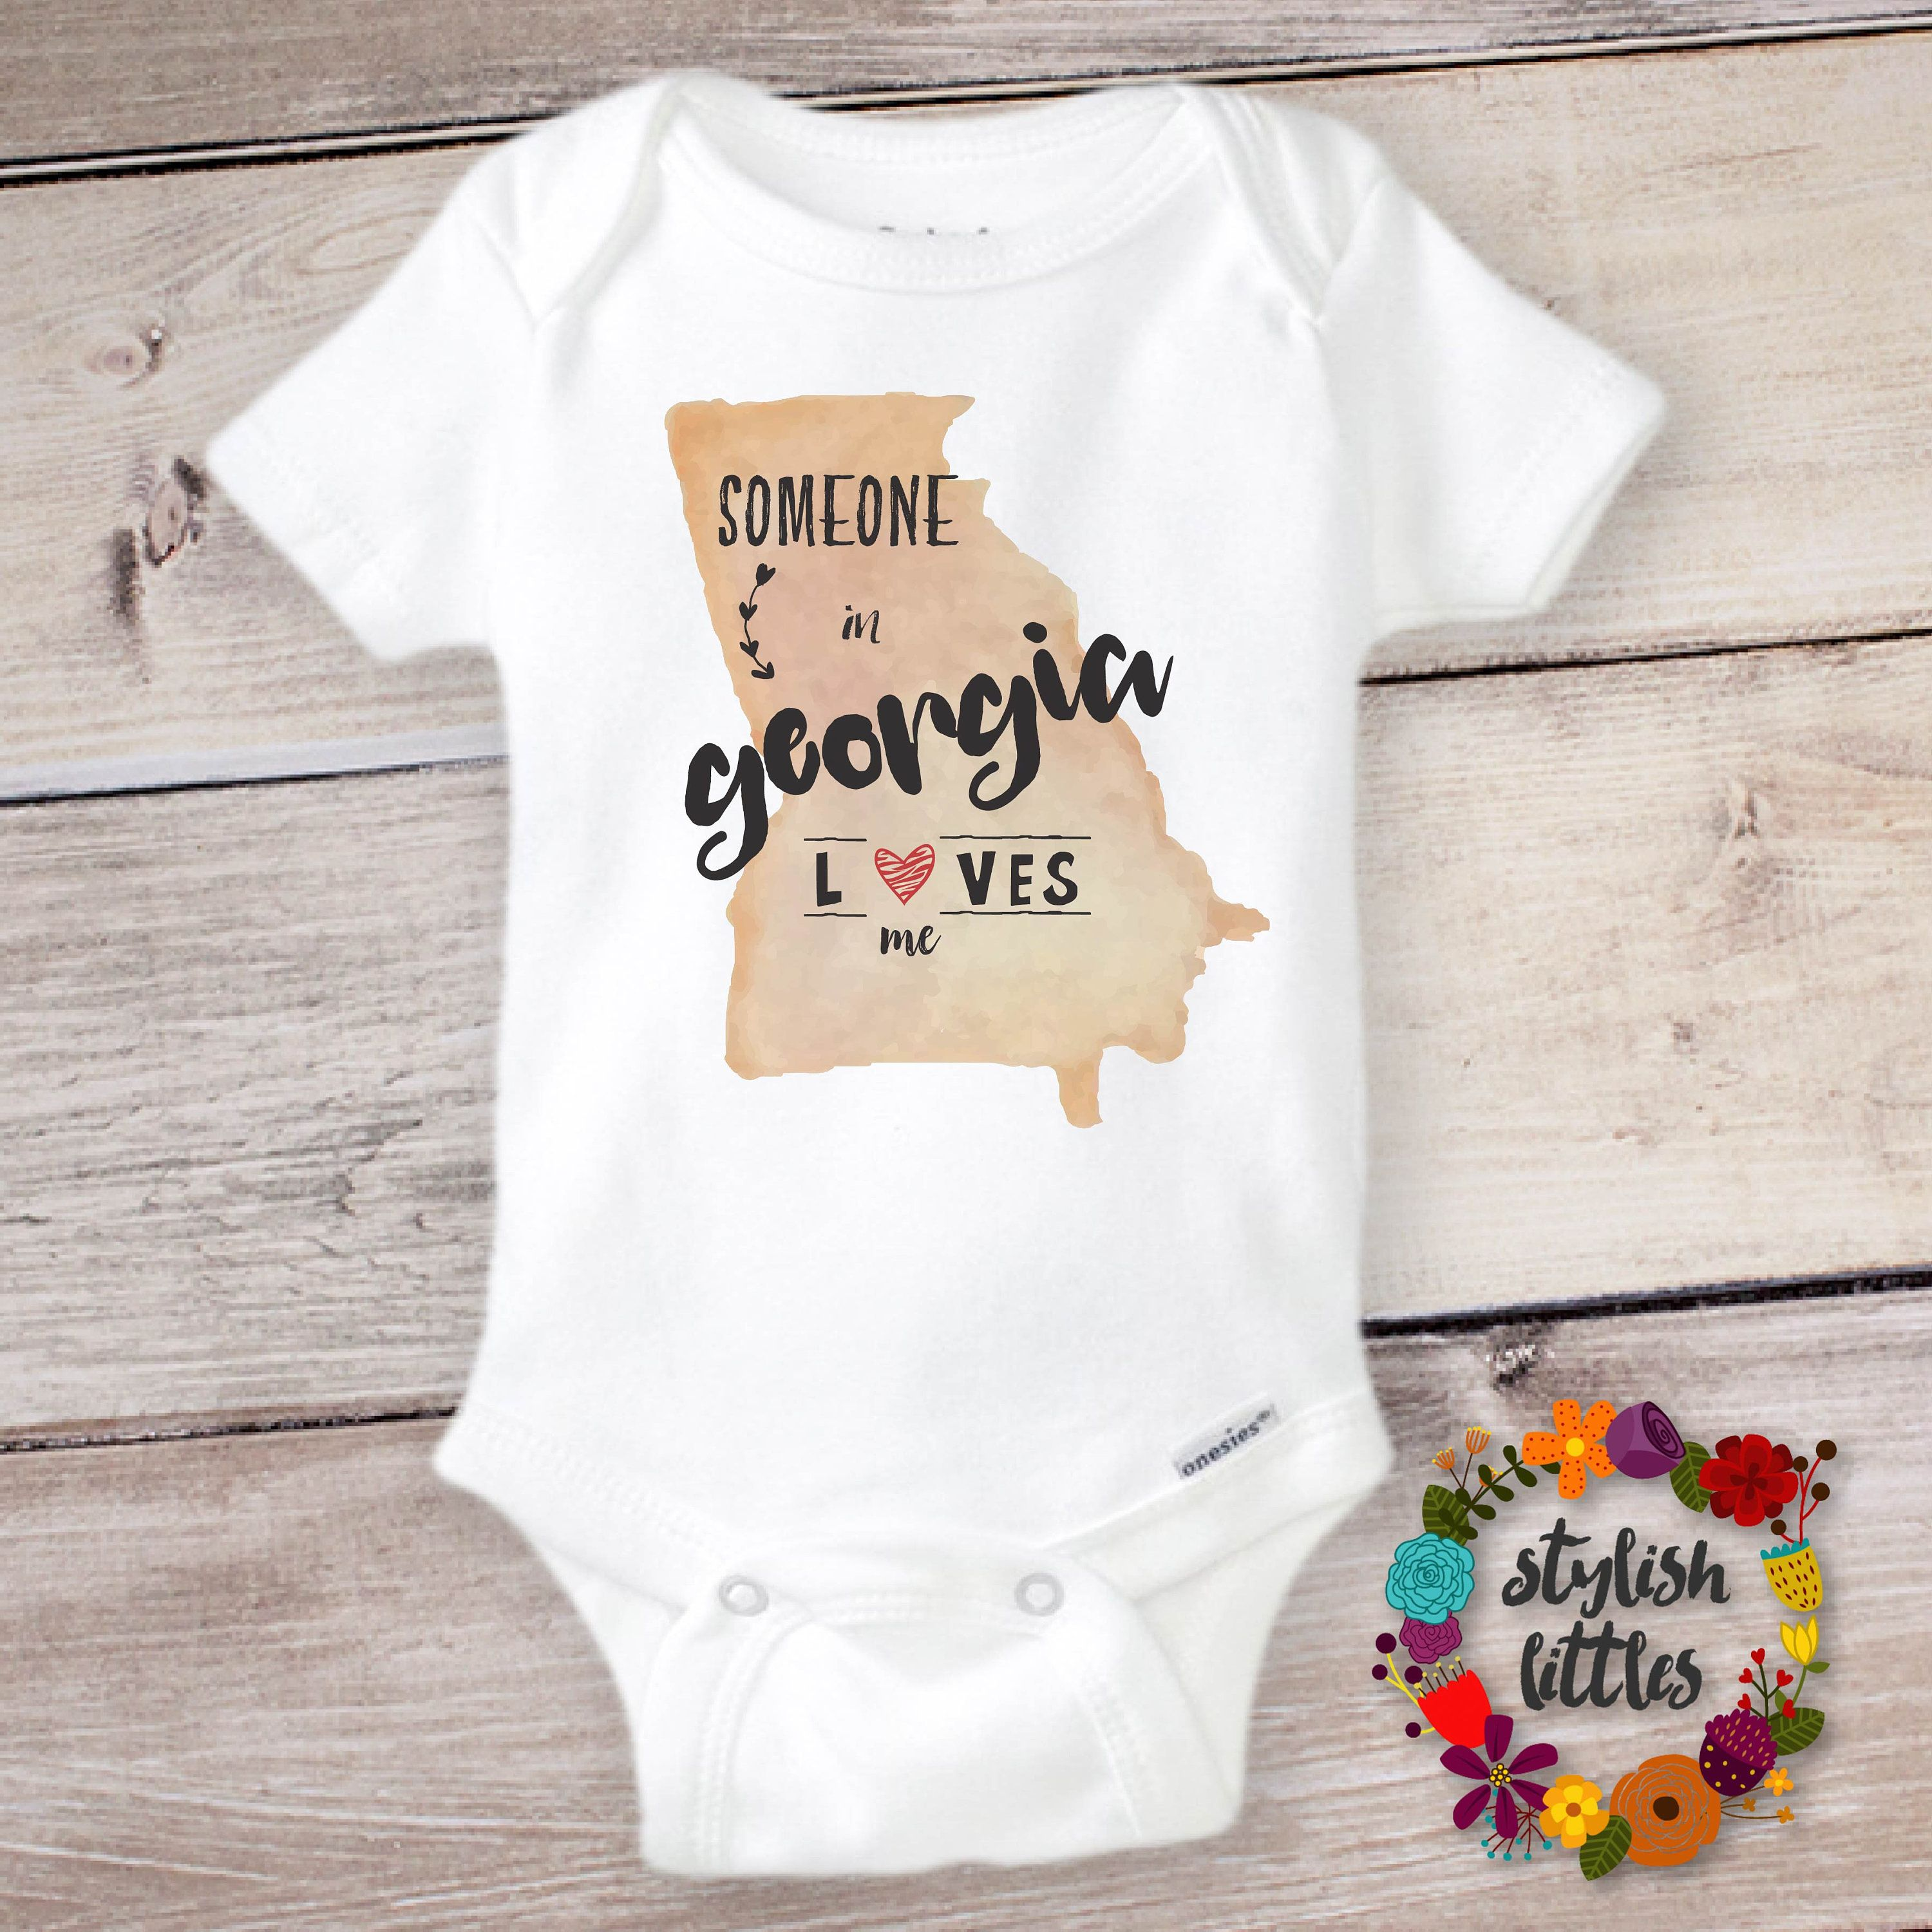 Kids funny cute Baby clothing gift personalized shirt Onesie bodysuit funny kids shirt